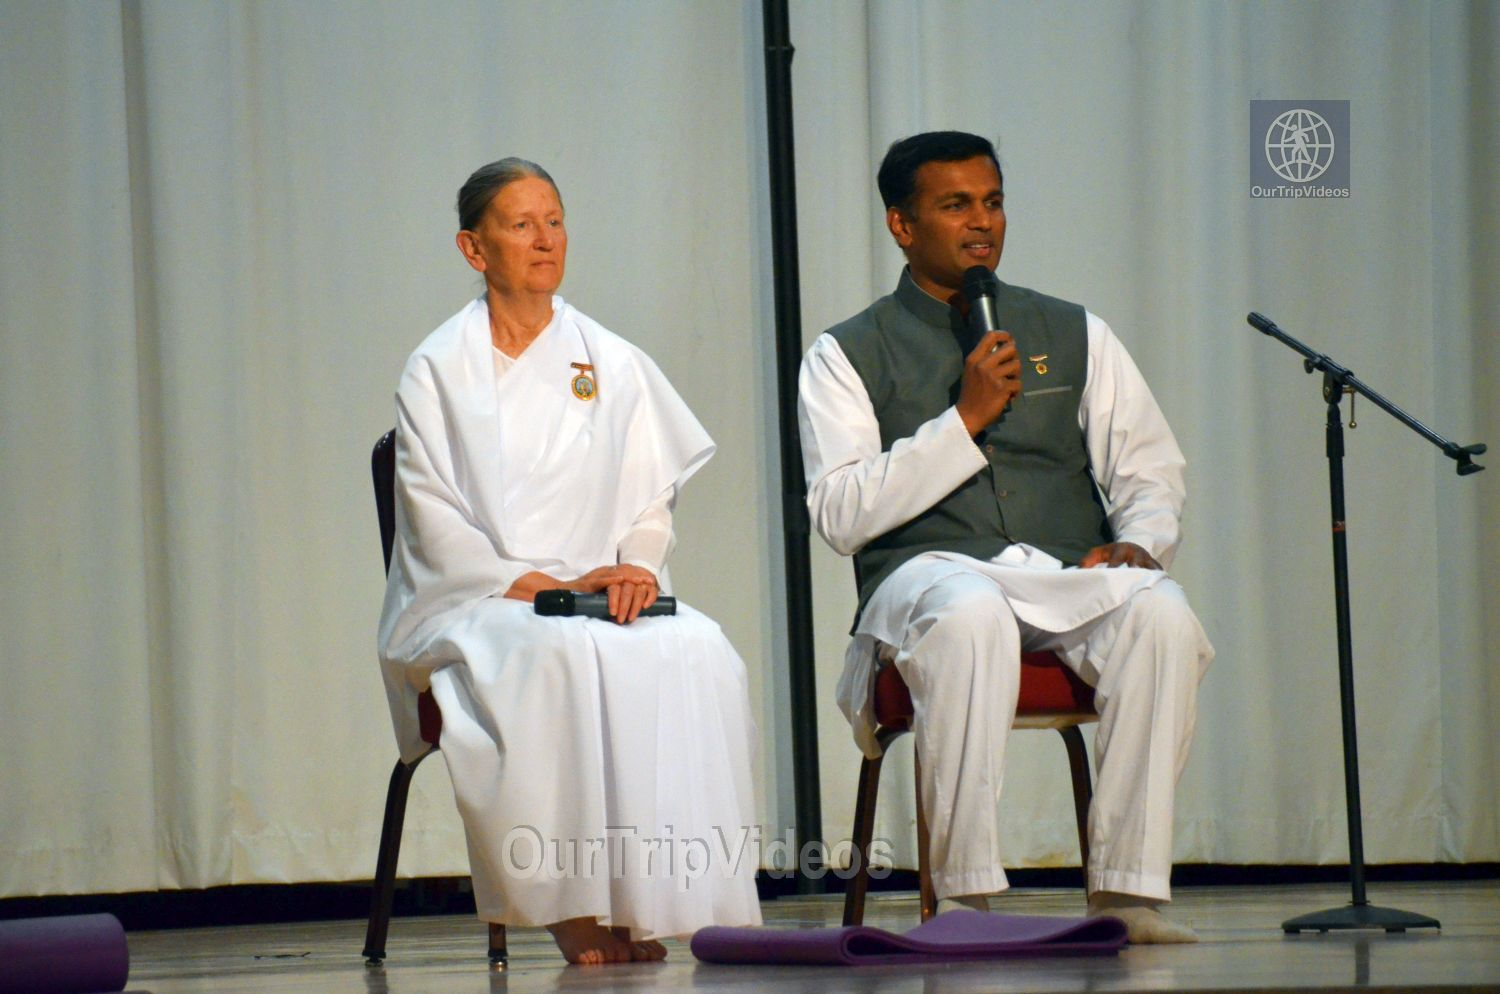 International Yoga Day at ICC, Milpitas, CA, USA - Picture 45 of 50